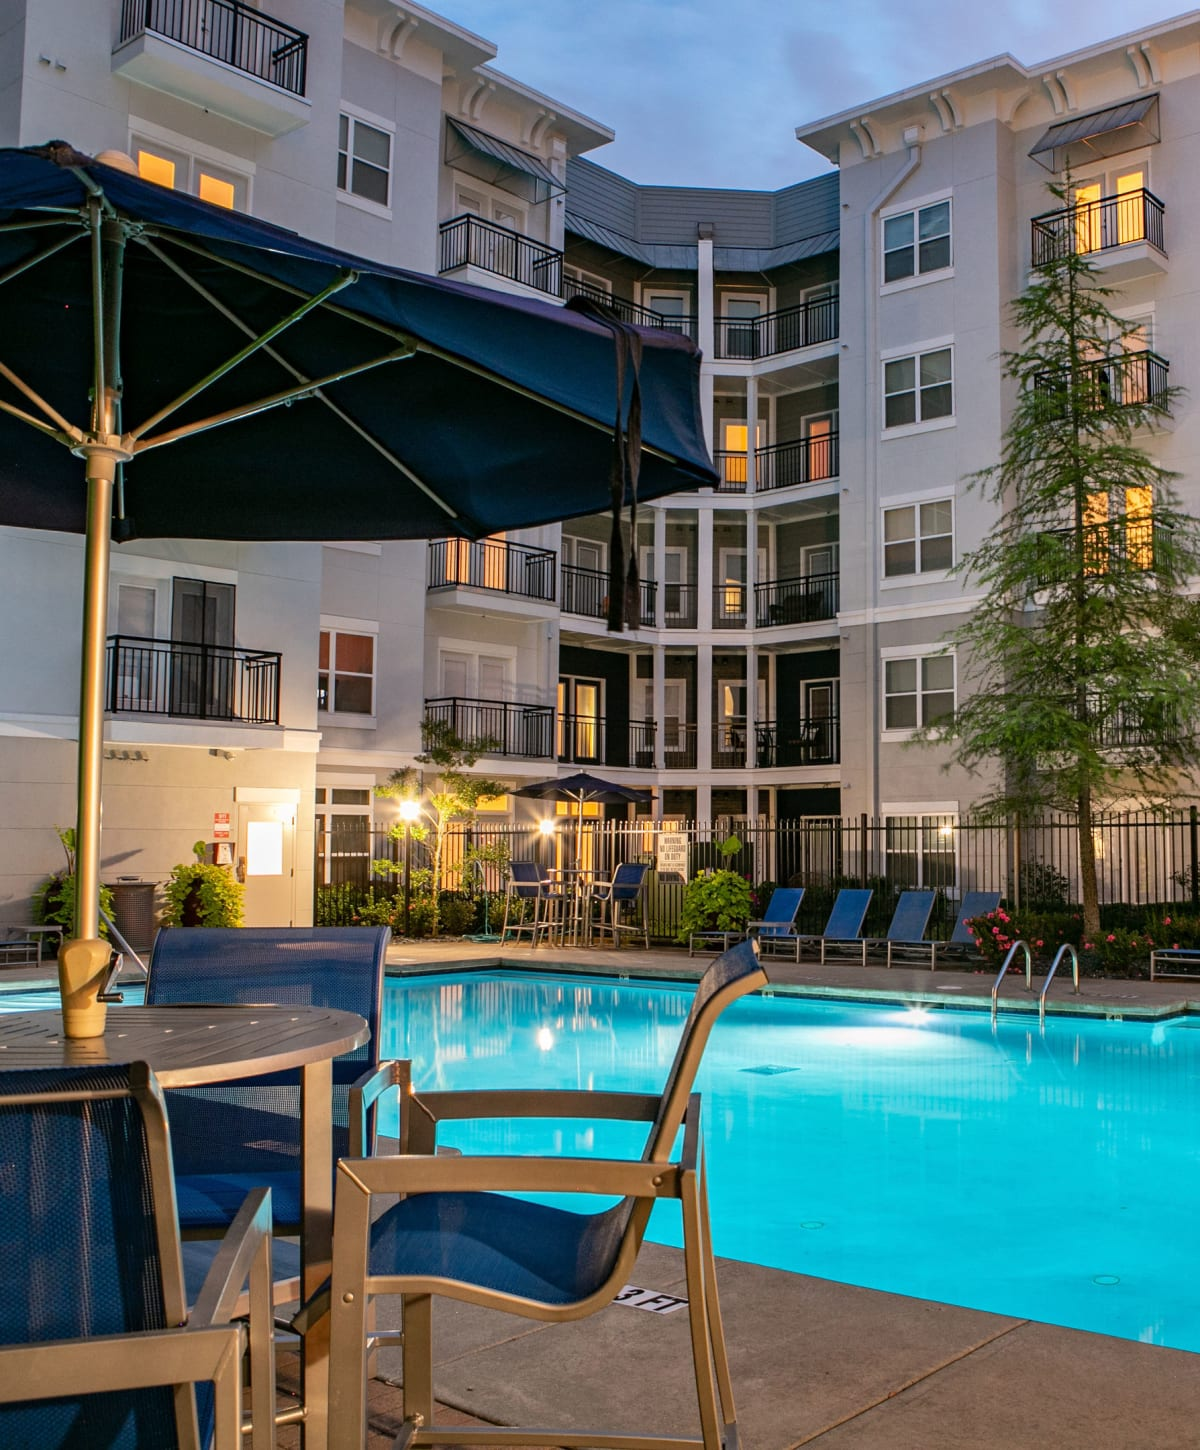 Park Pacific Apartments: The Atlantic Aerotropolis